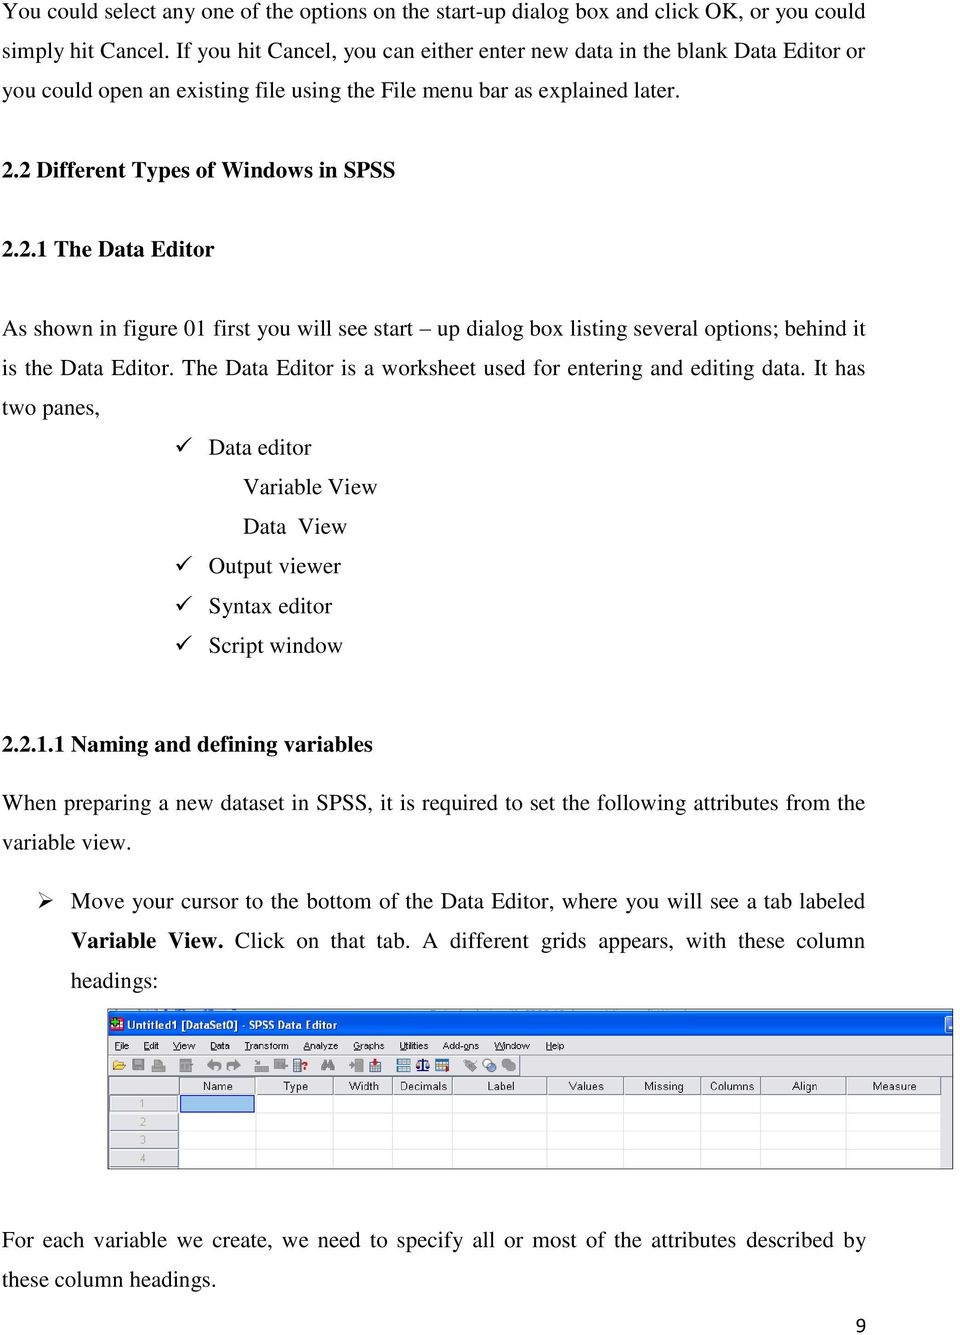 2 Different Types of Windows in SPSS 2.2.1 The Data Editor As shown in figure 01 first you will see start up dialog box listing several options; behind it is the Data Editor.